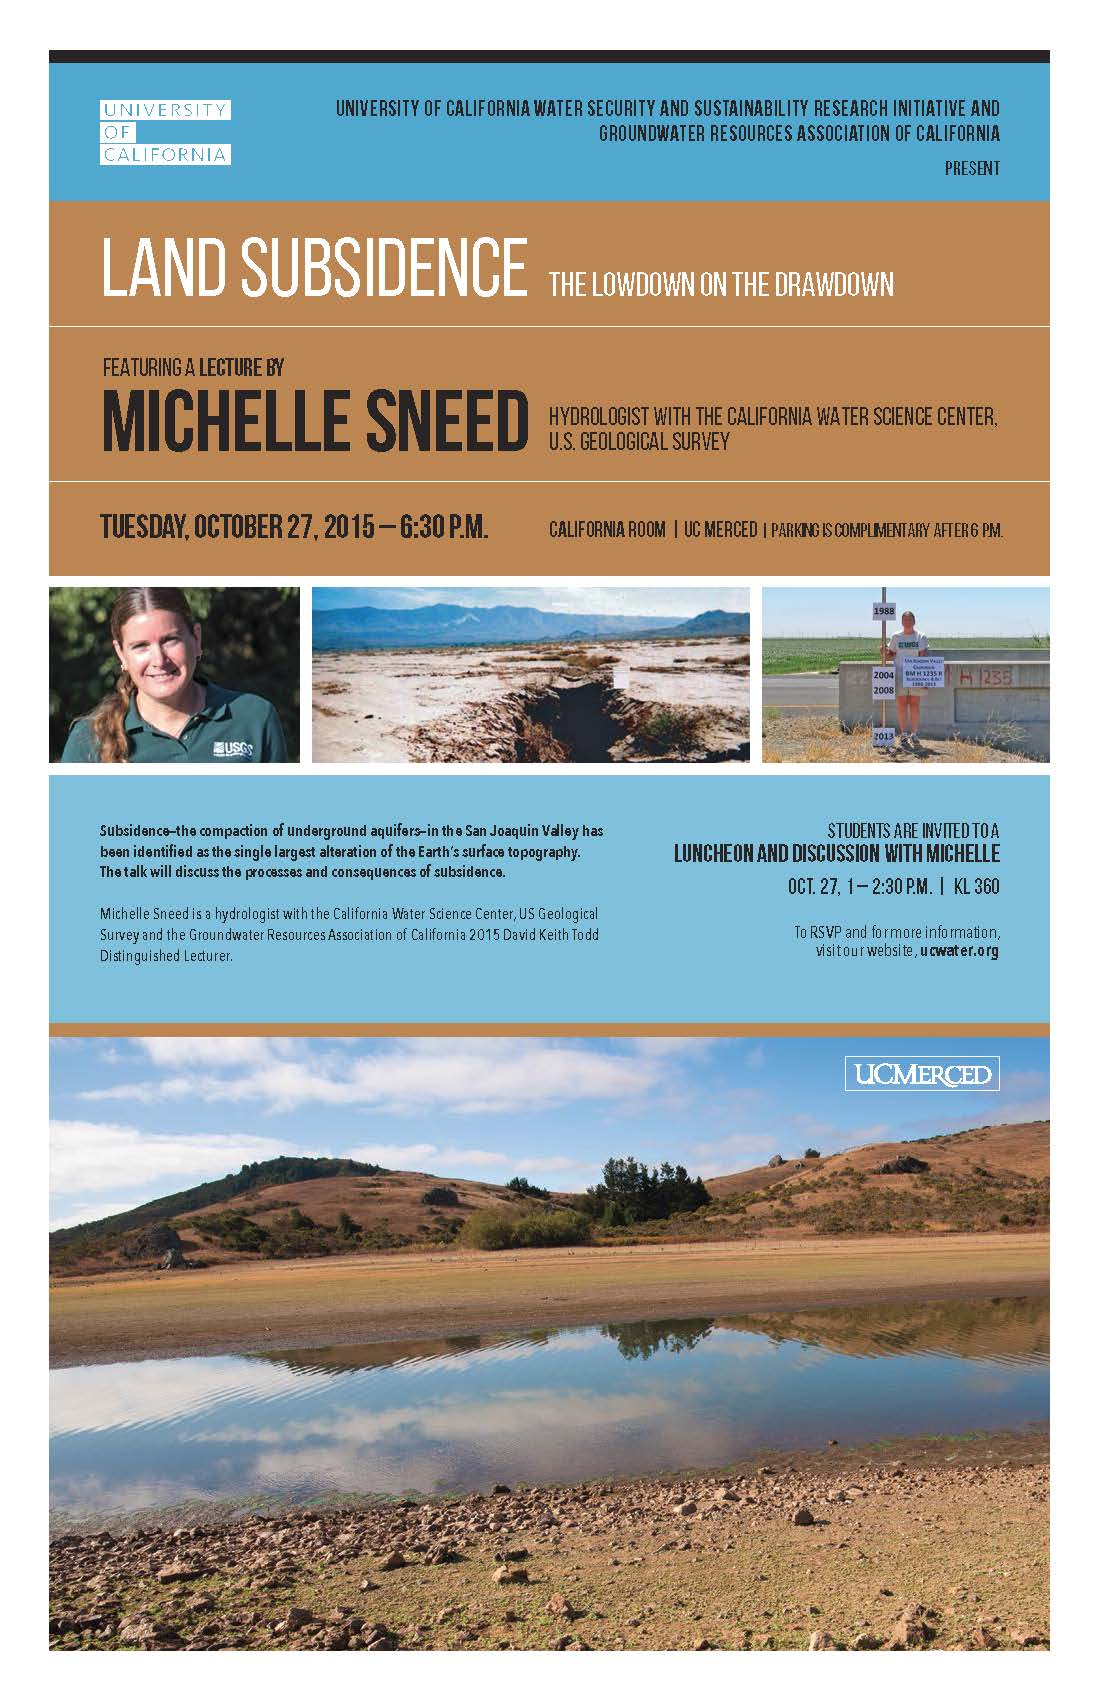 Poster for Michelle Sneed